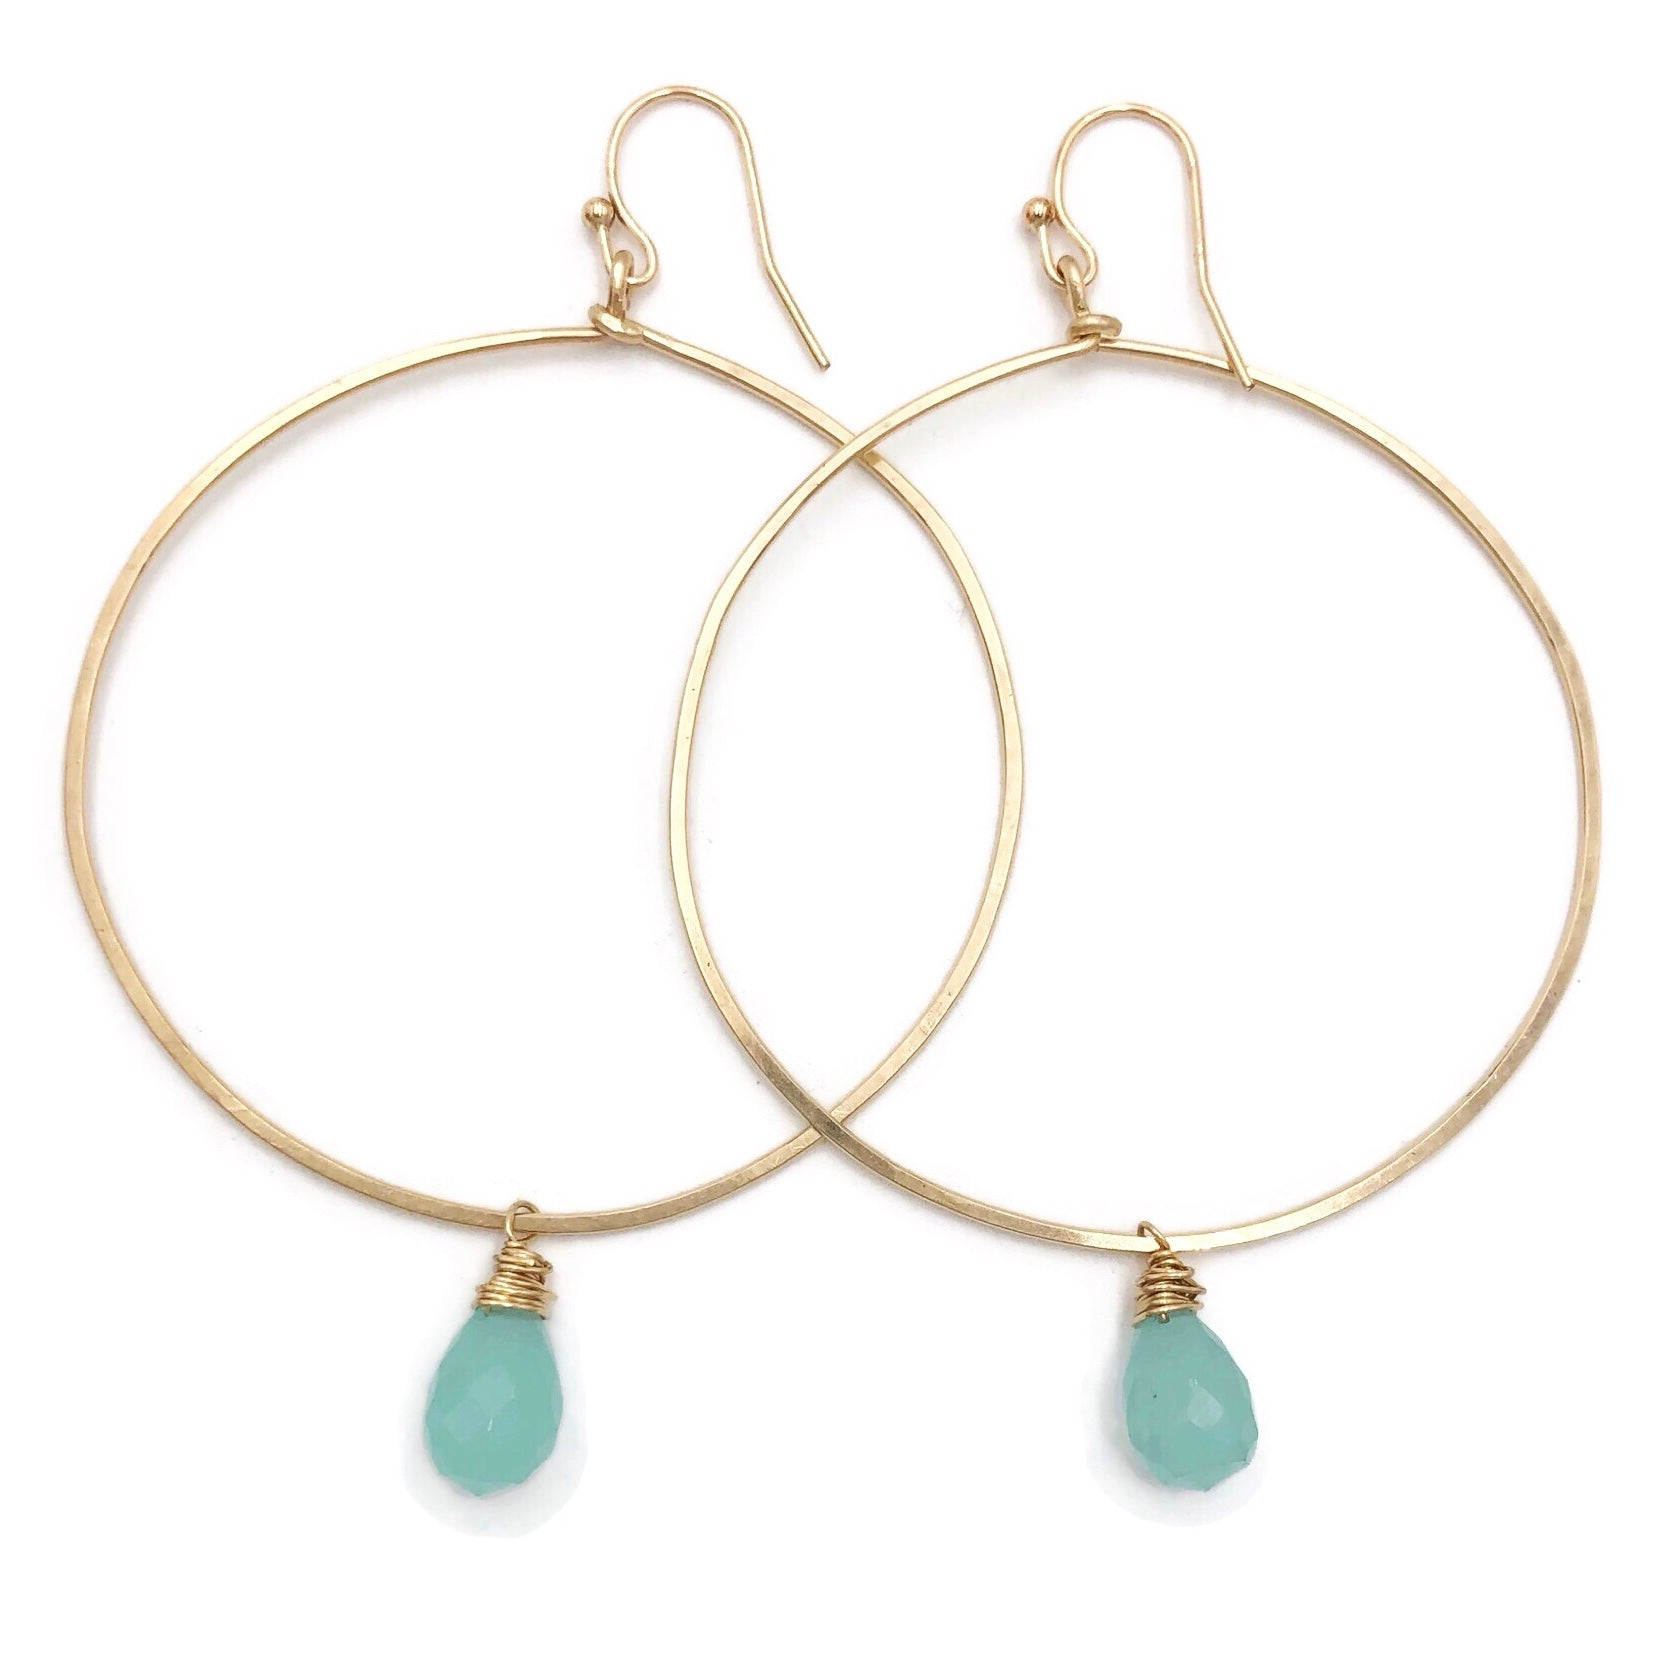 Hammered Gold Filled Hoops